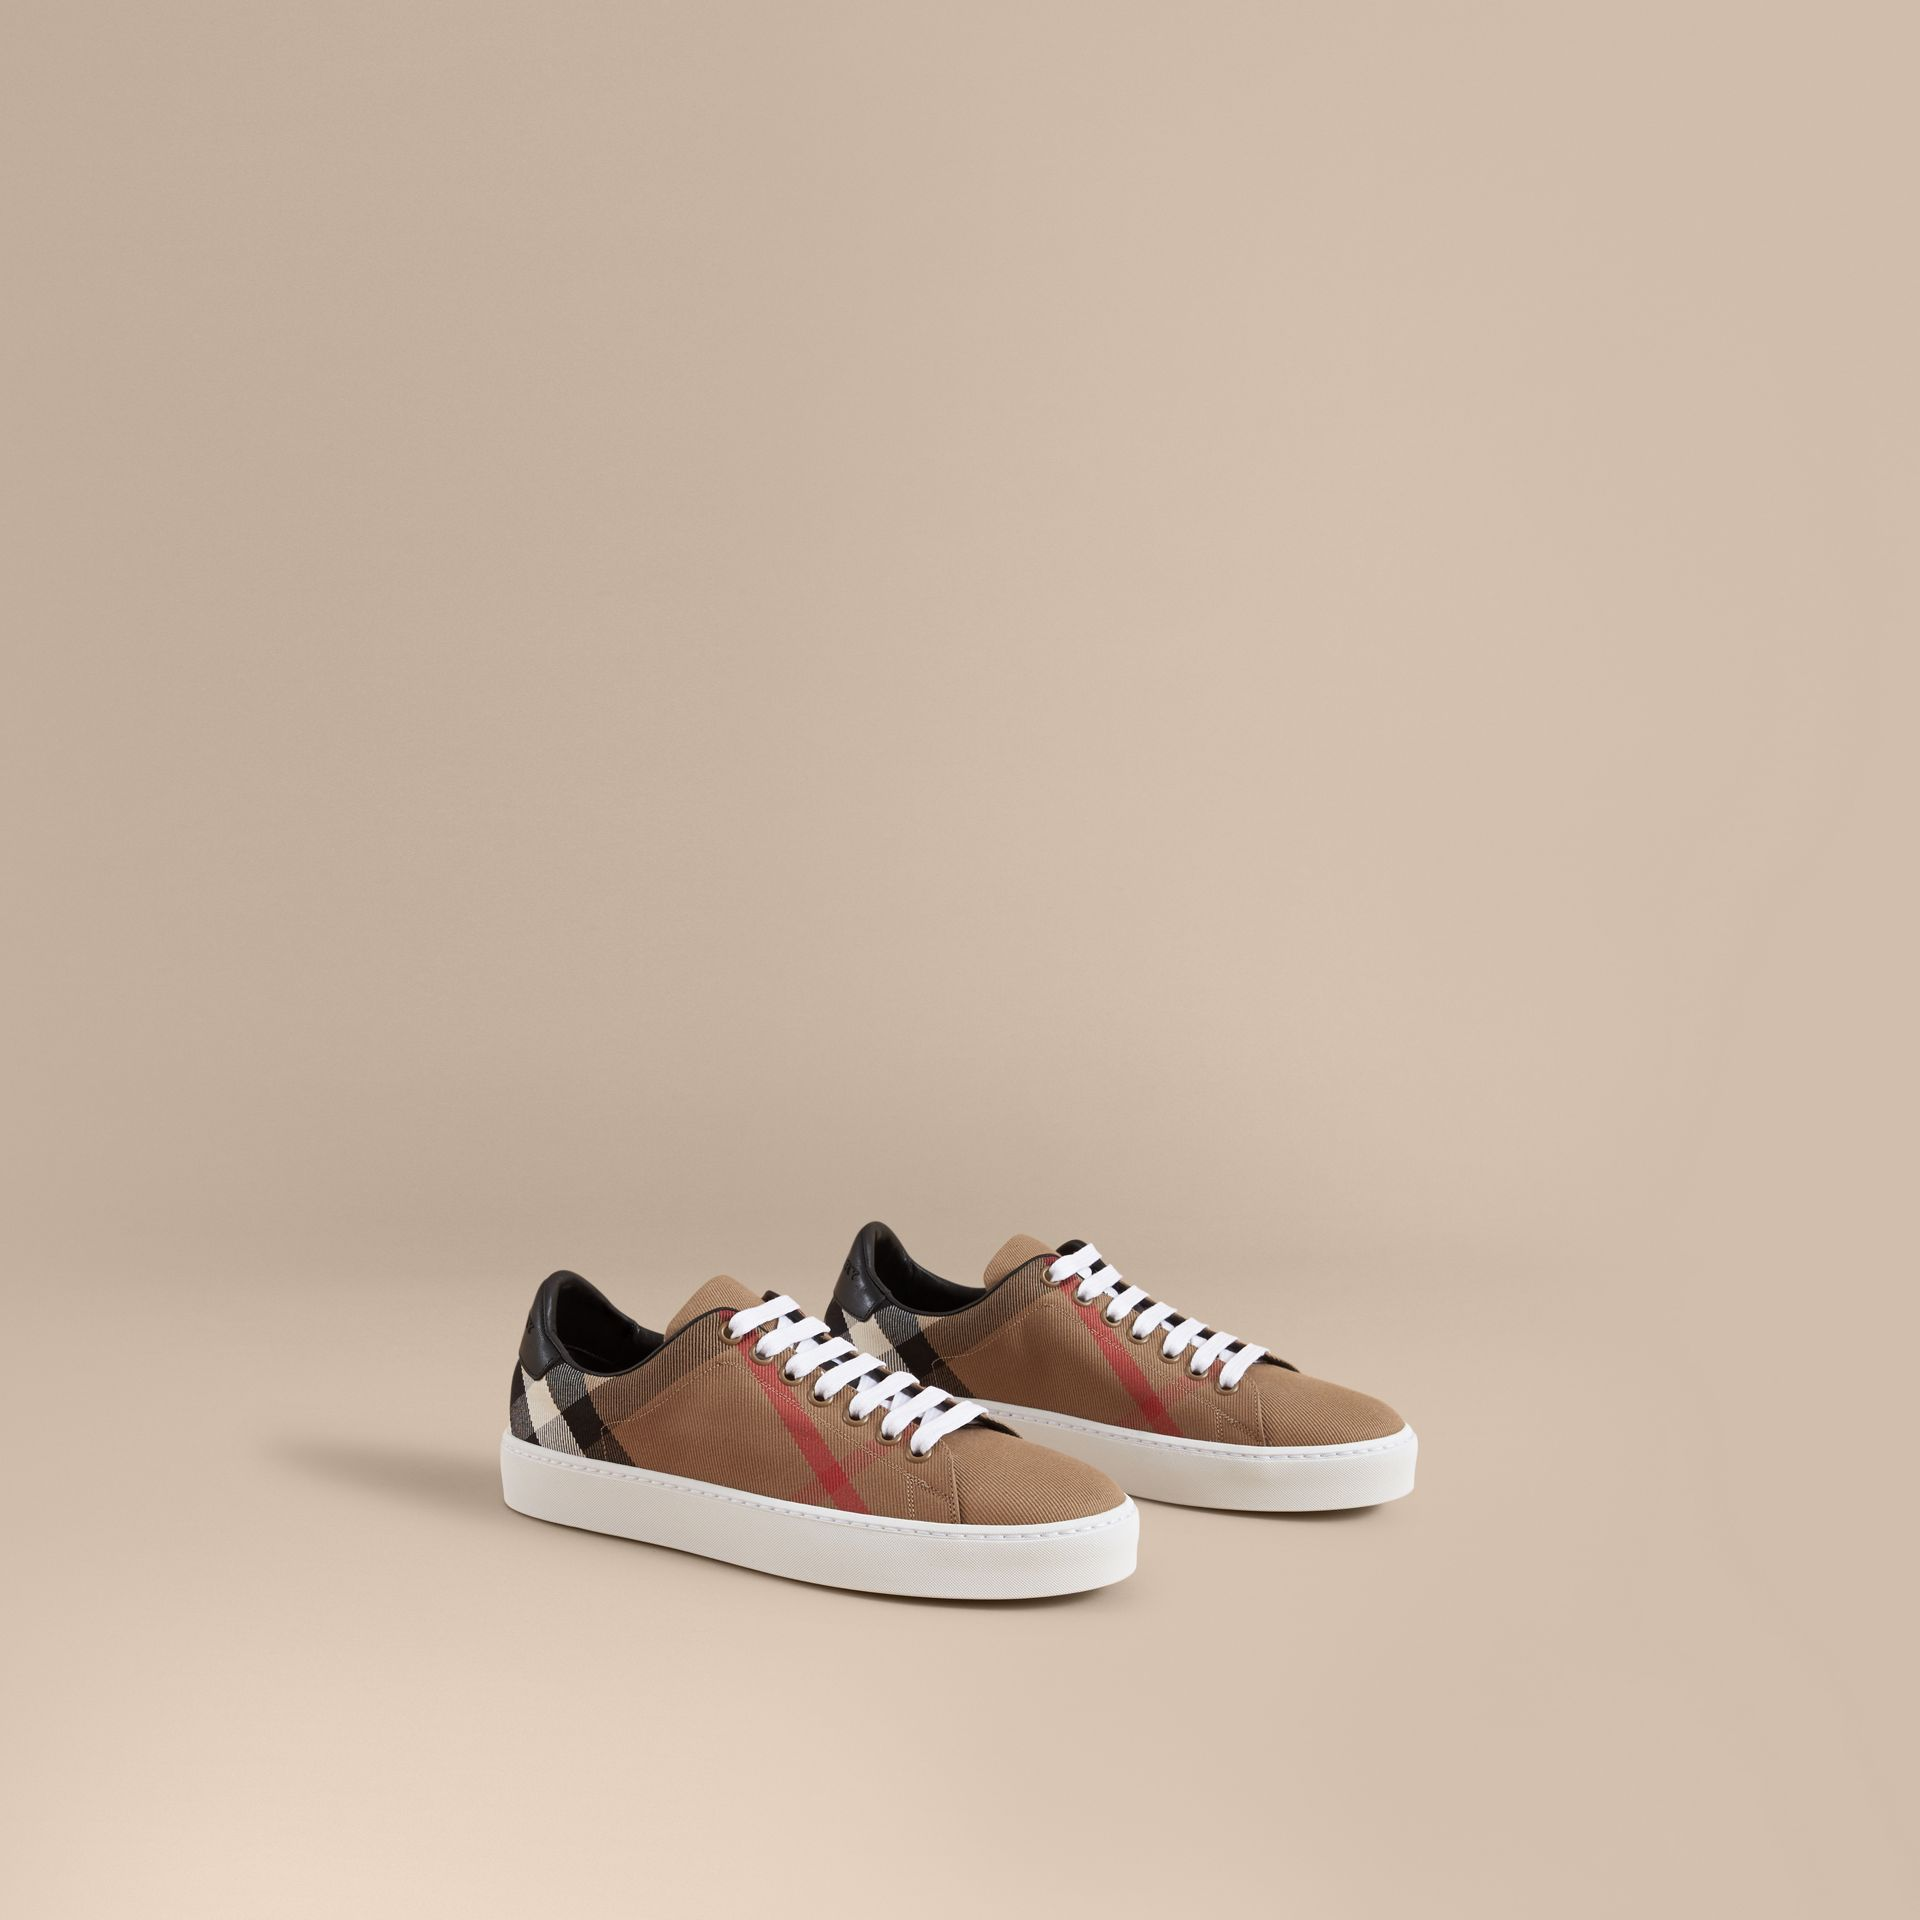 House Check and Leather Trainers in Classic - Women | Burberry - gallery image 1